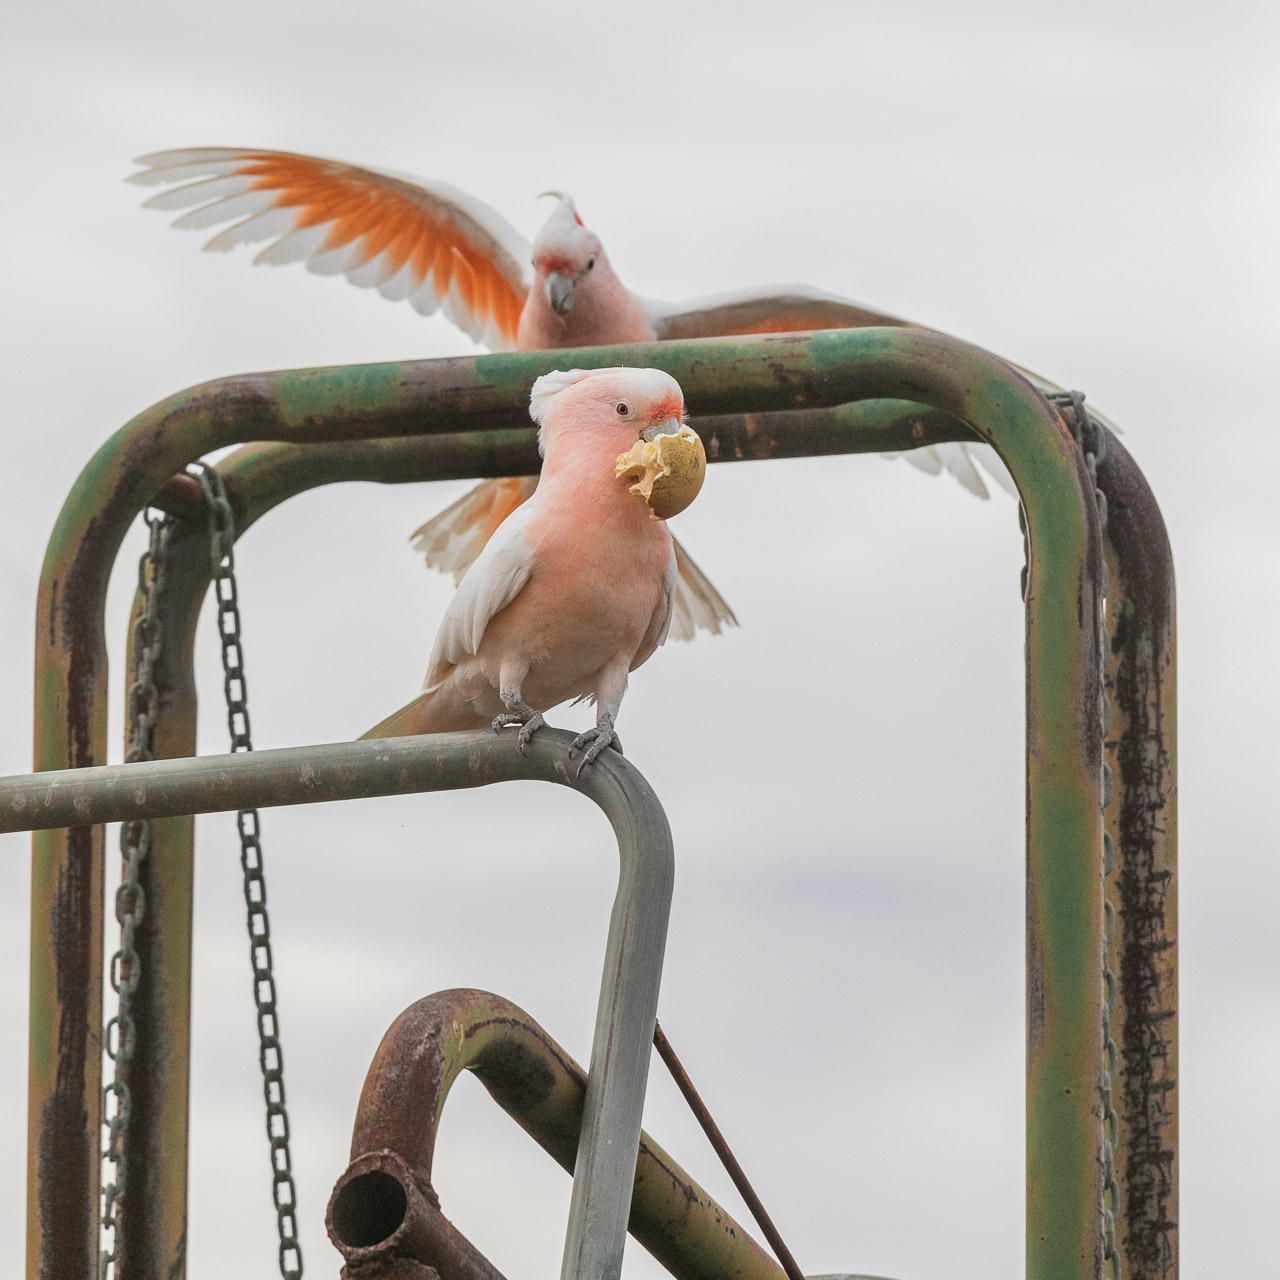 Two Major Mitchell's (Pink) Cockatoos at Wooleen Station, Western Australia